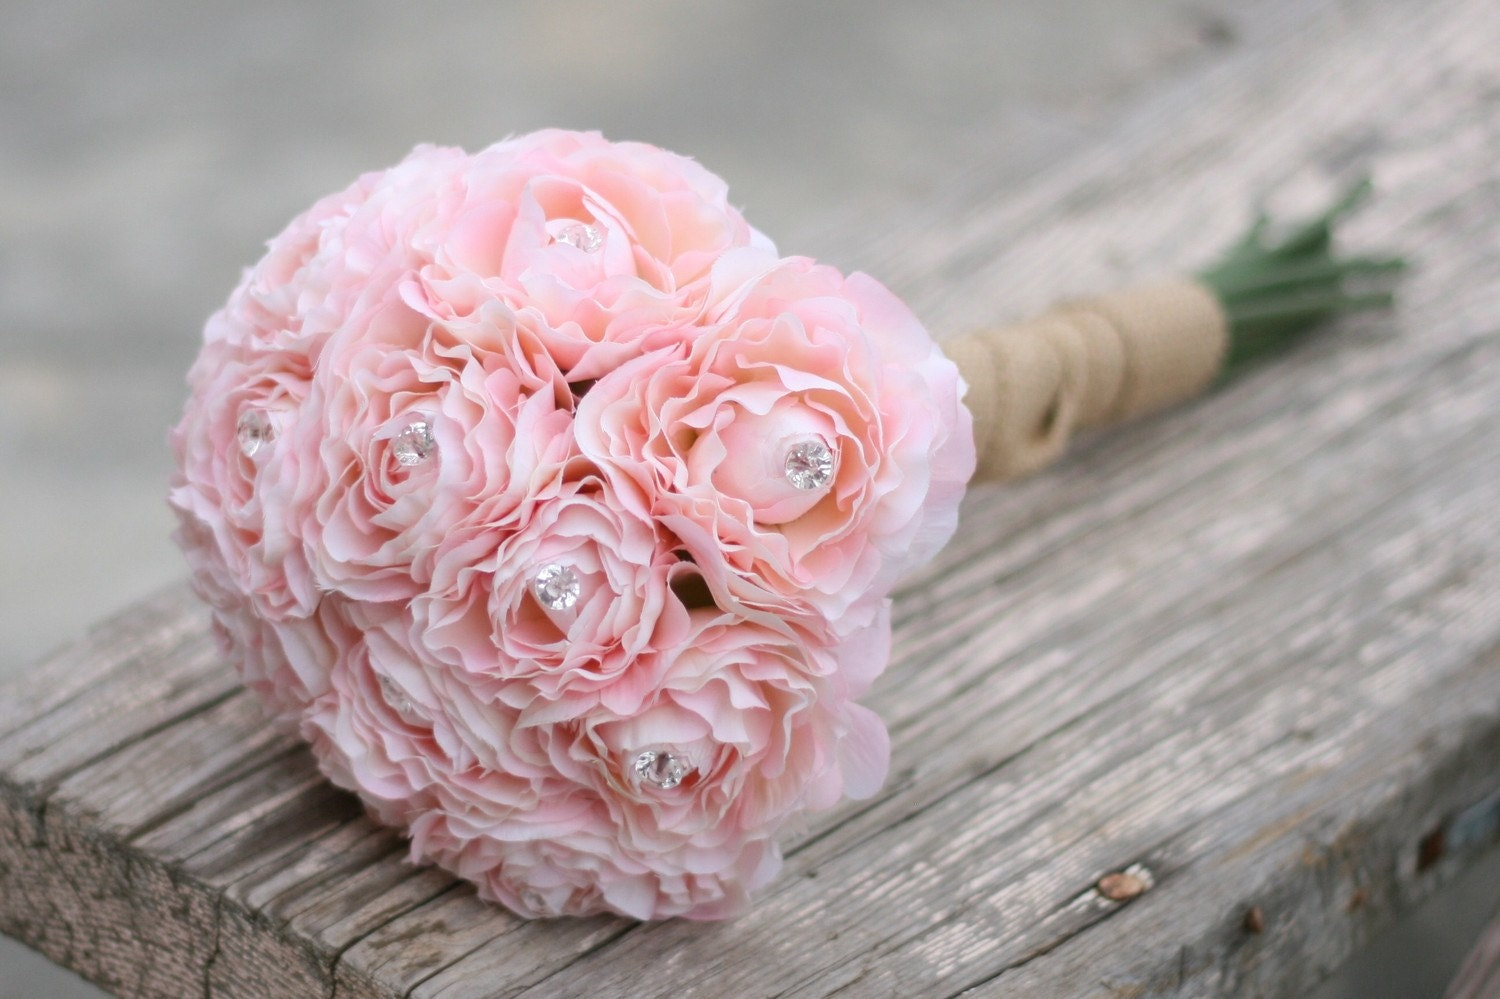 Bride Bouquet Cotton Candy Pink Ranunculus With Diamond Rhinestone Accents Wrapped In Rustic Burlap